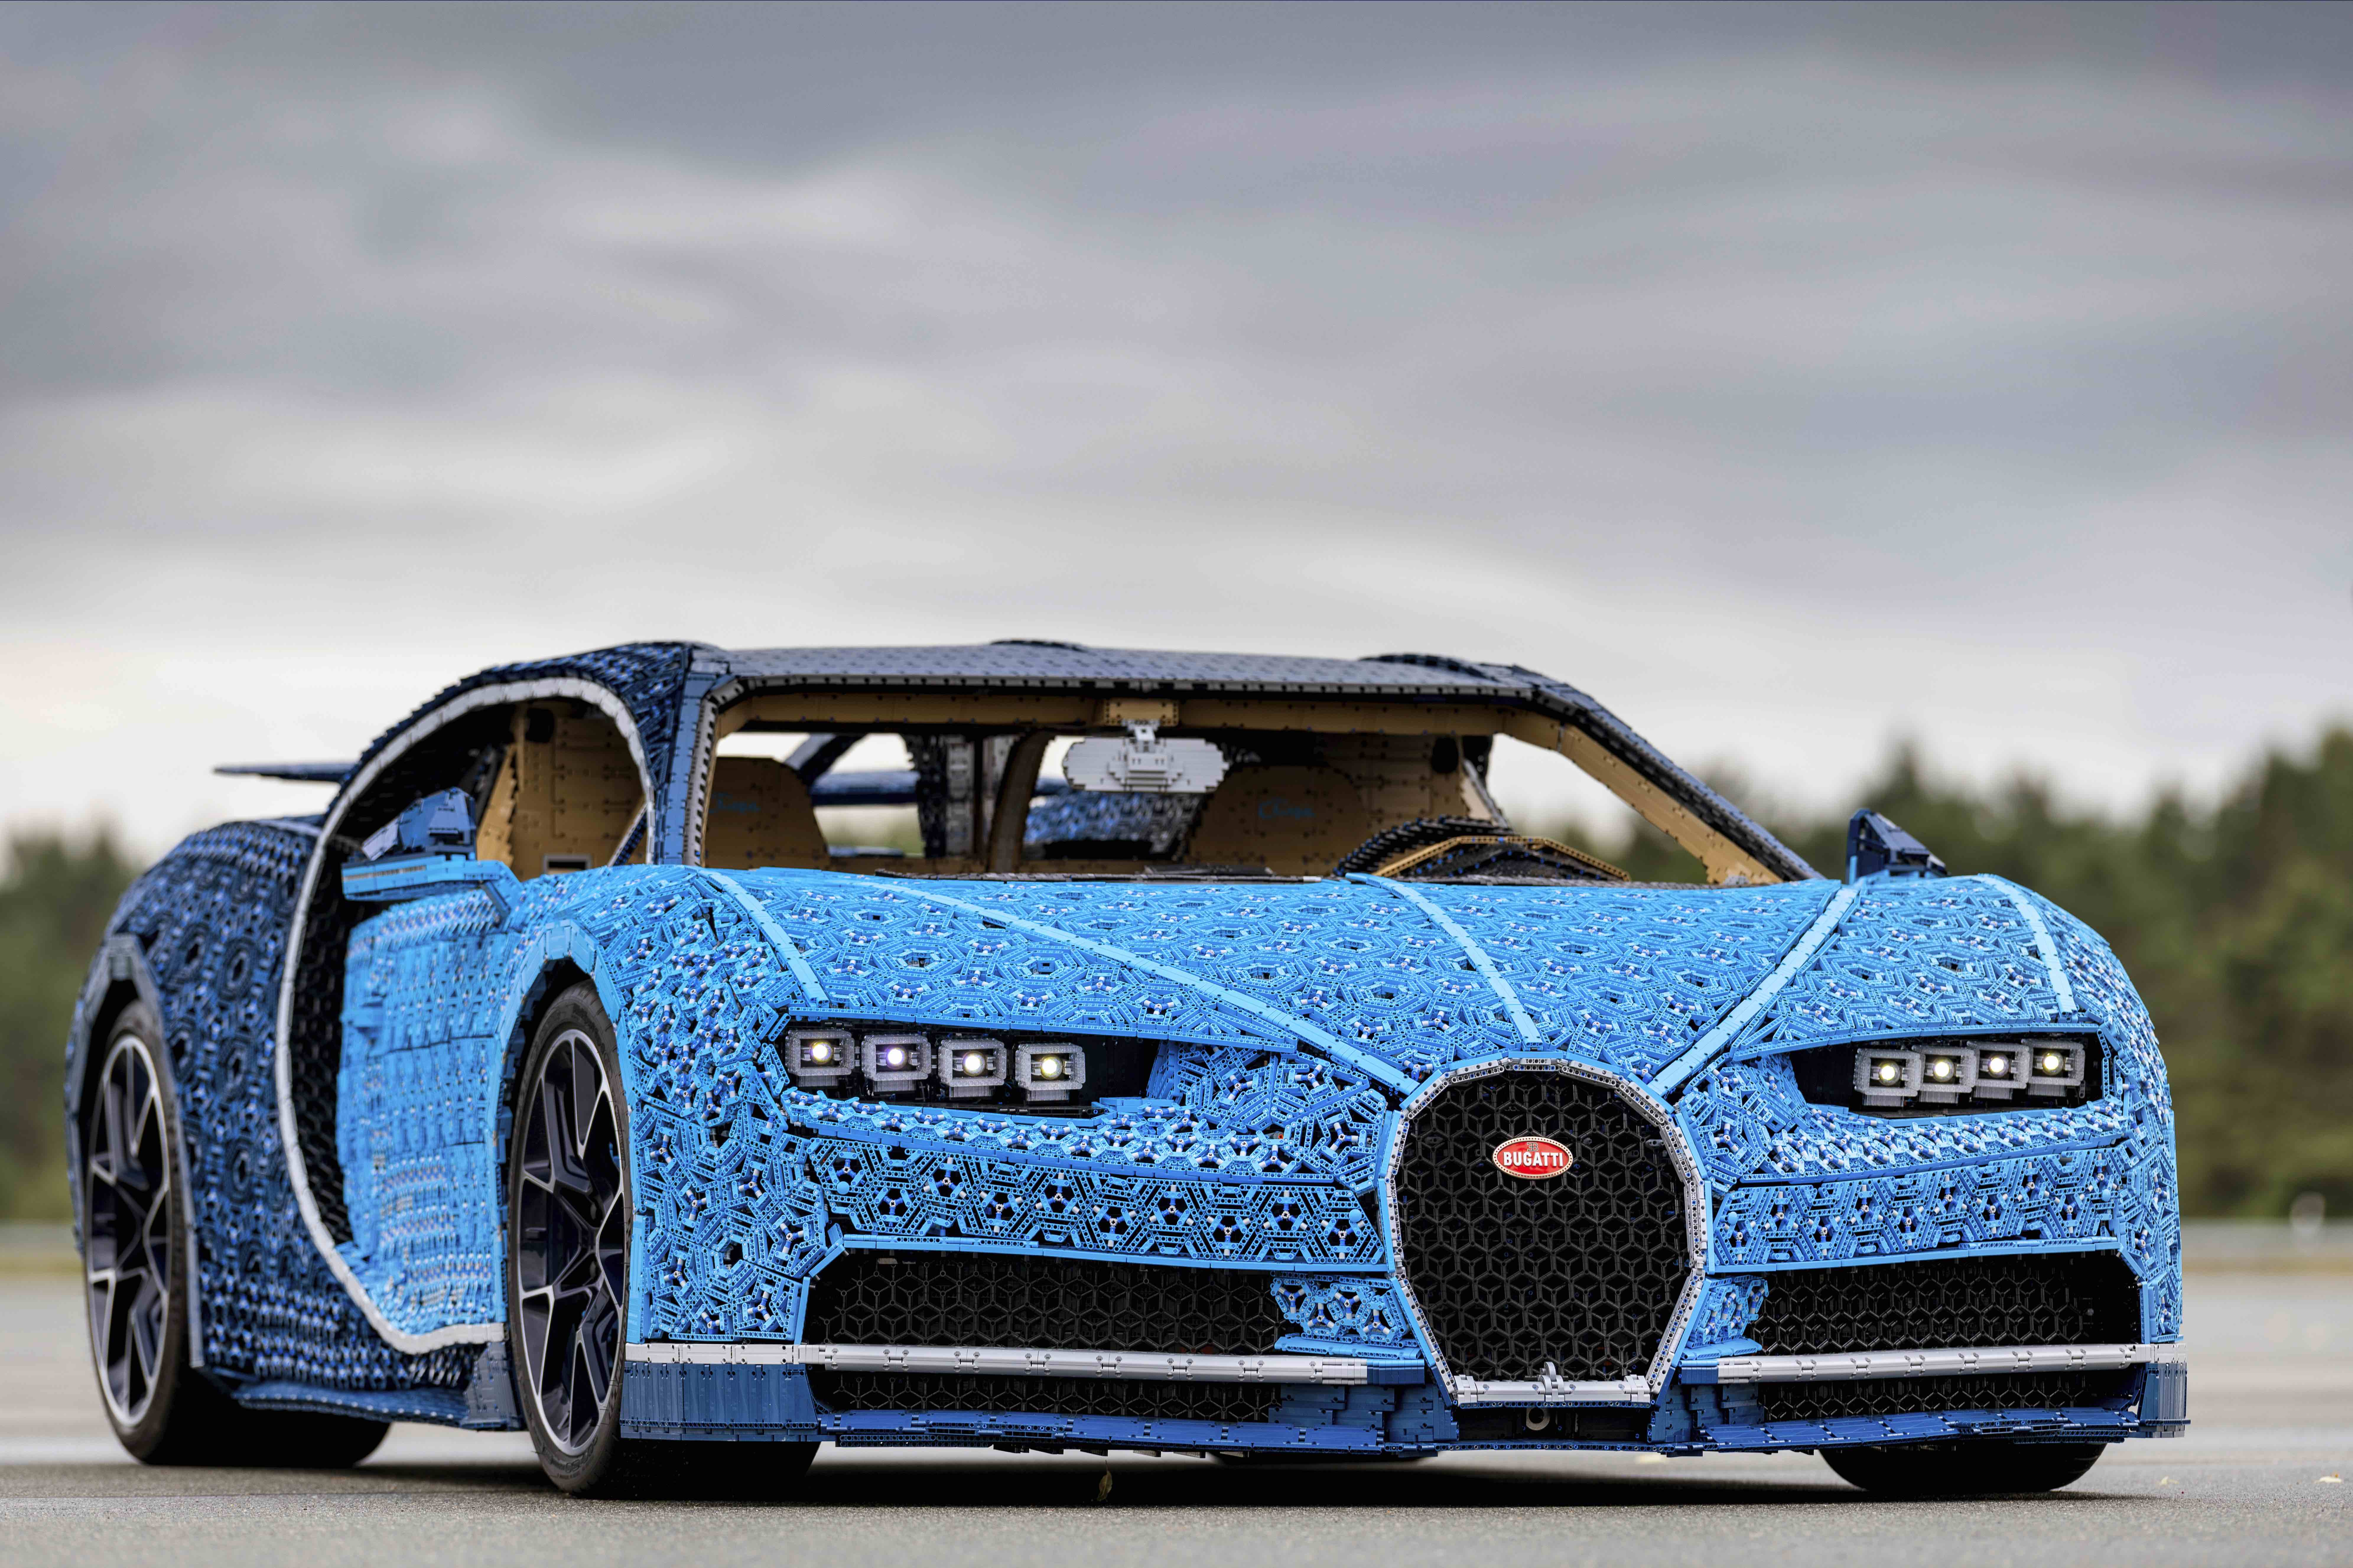 Lego has made a full-size working Bugatti Chiron that goes 12mph